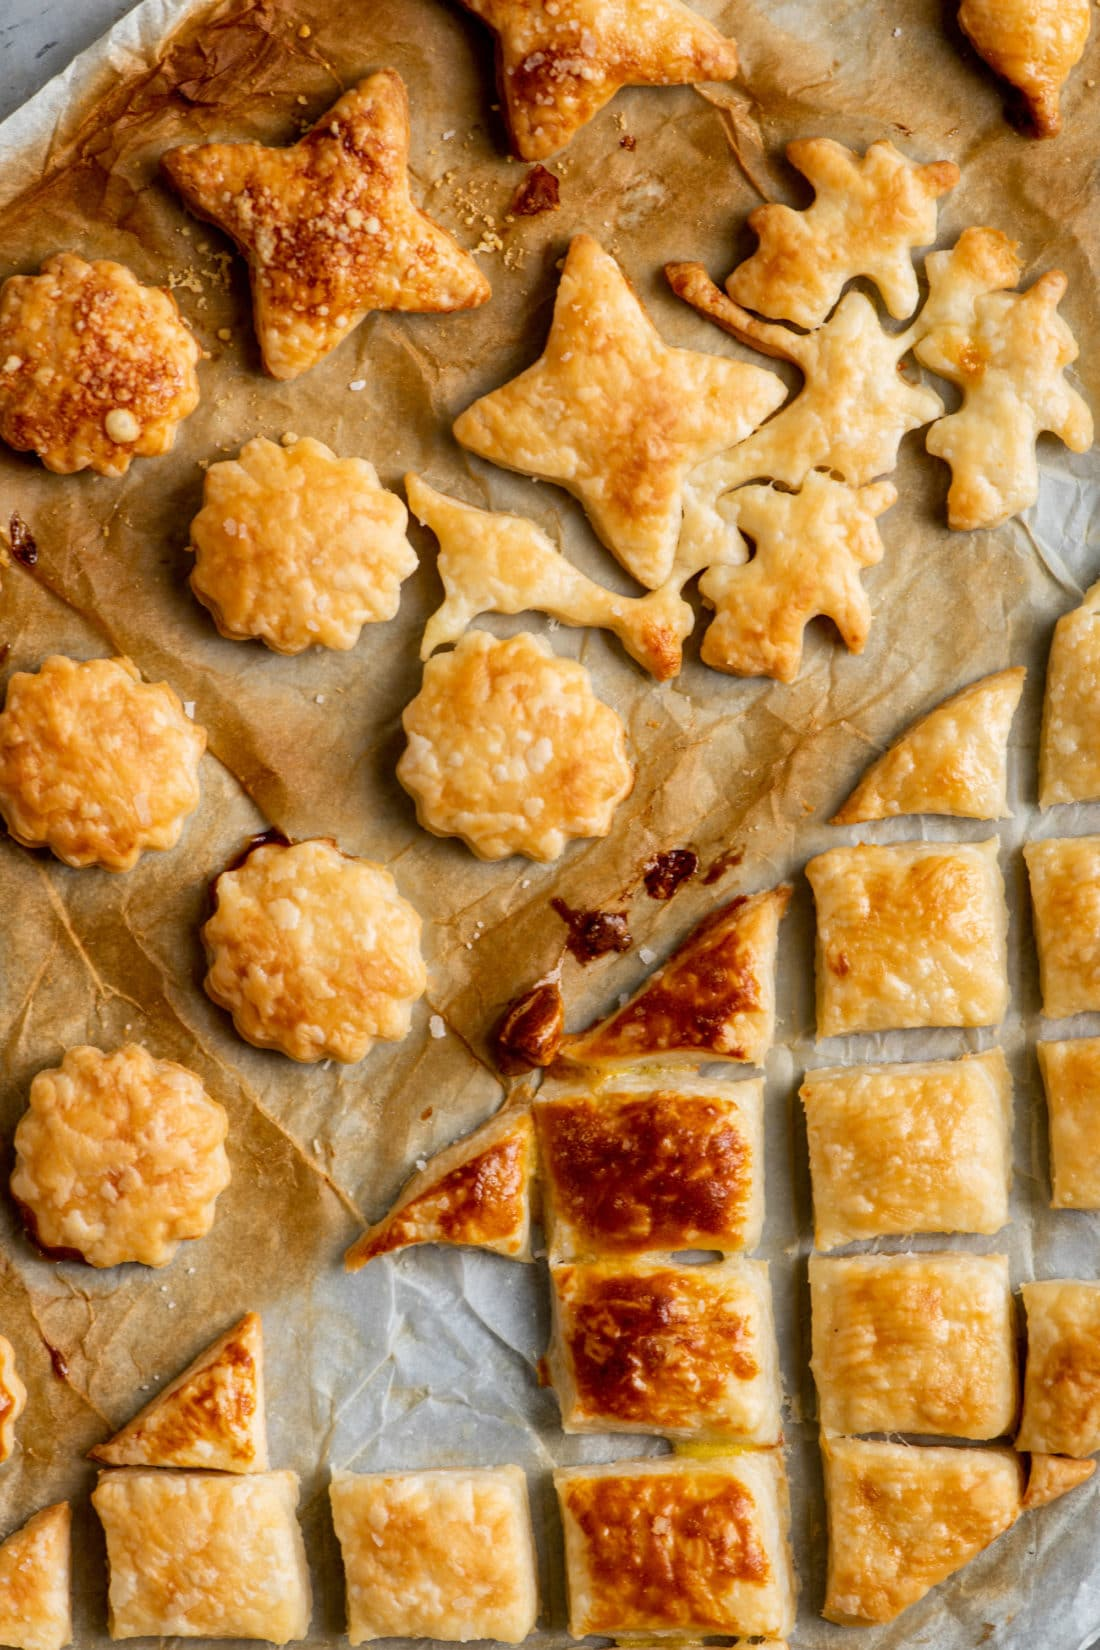 How to Make Puff Pastry Croutons